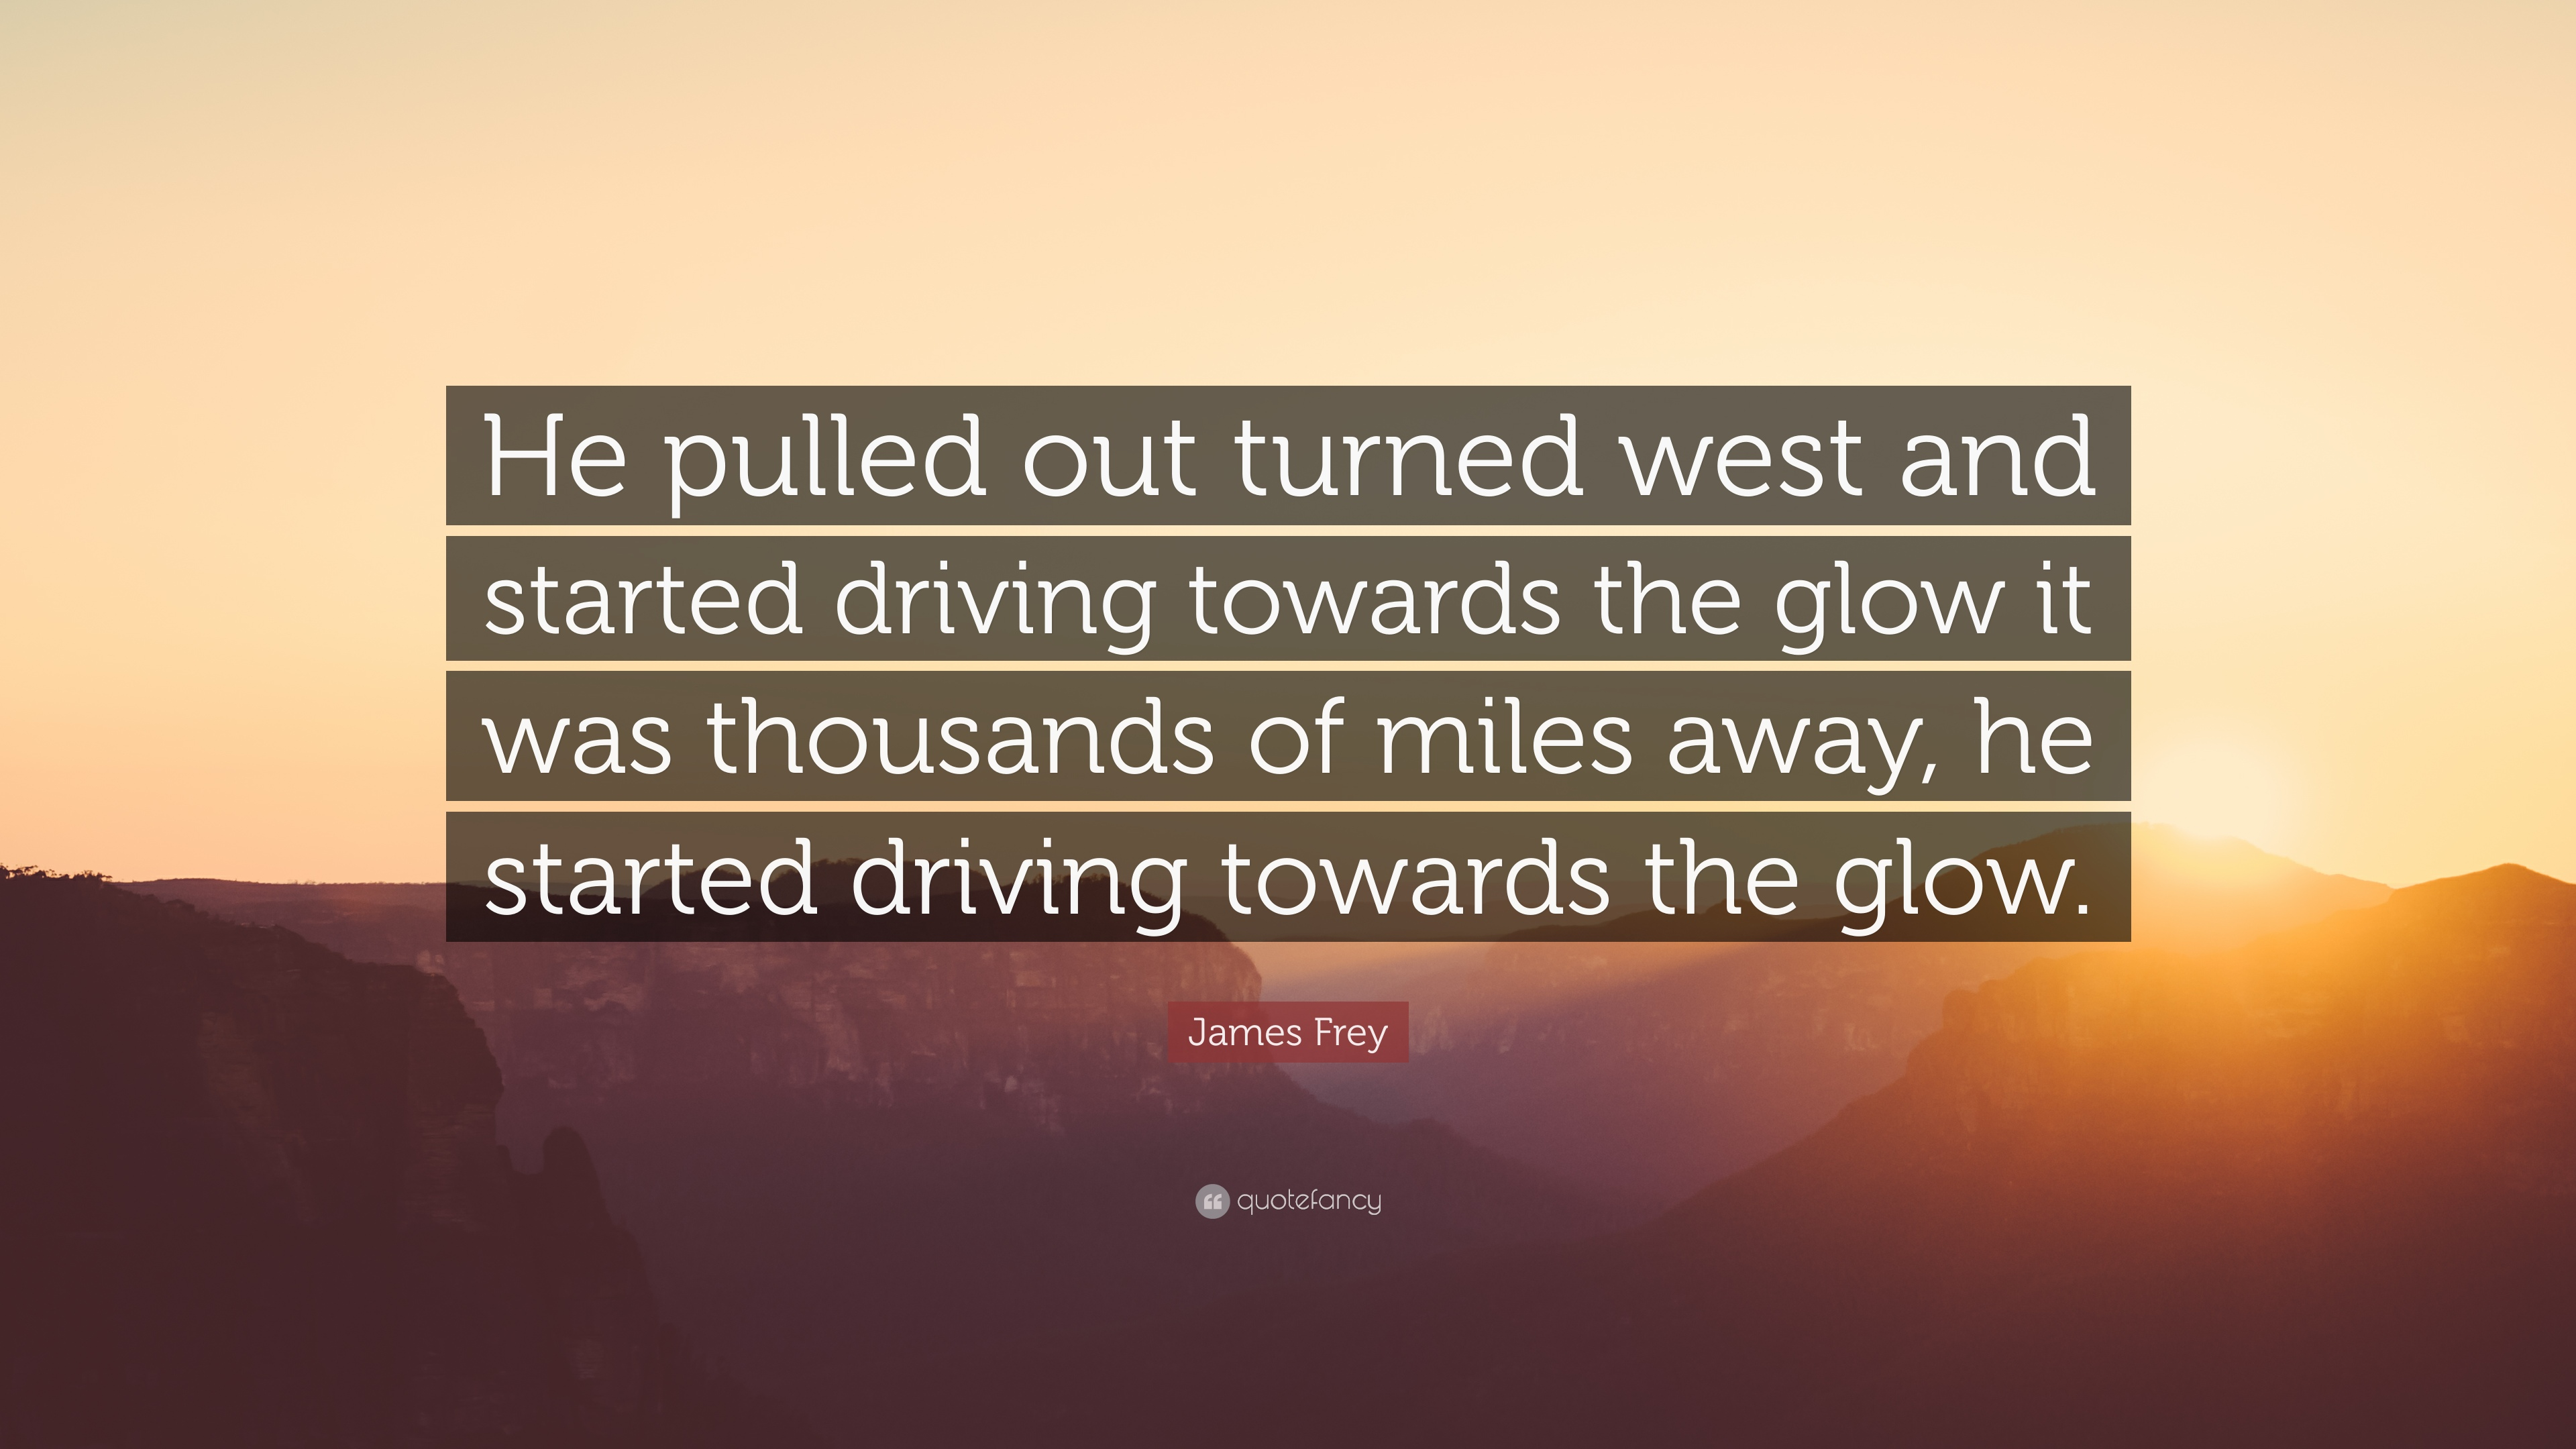 Good James Frey Quote: U201cHe Pulled Out Turned West And Started Driving Towards  The Glow